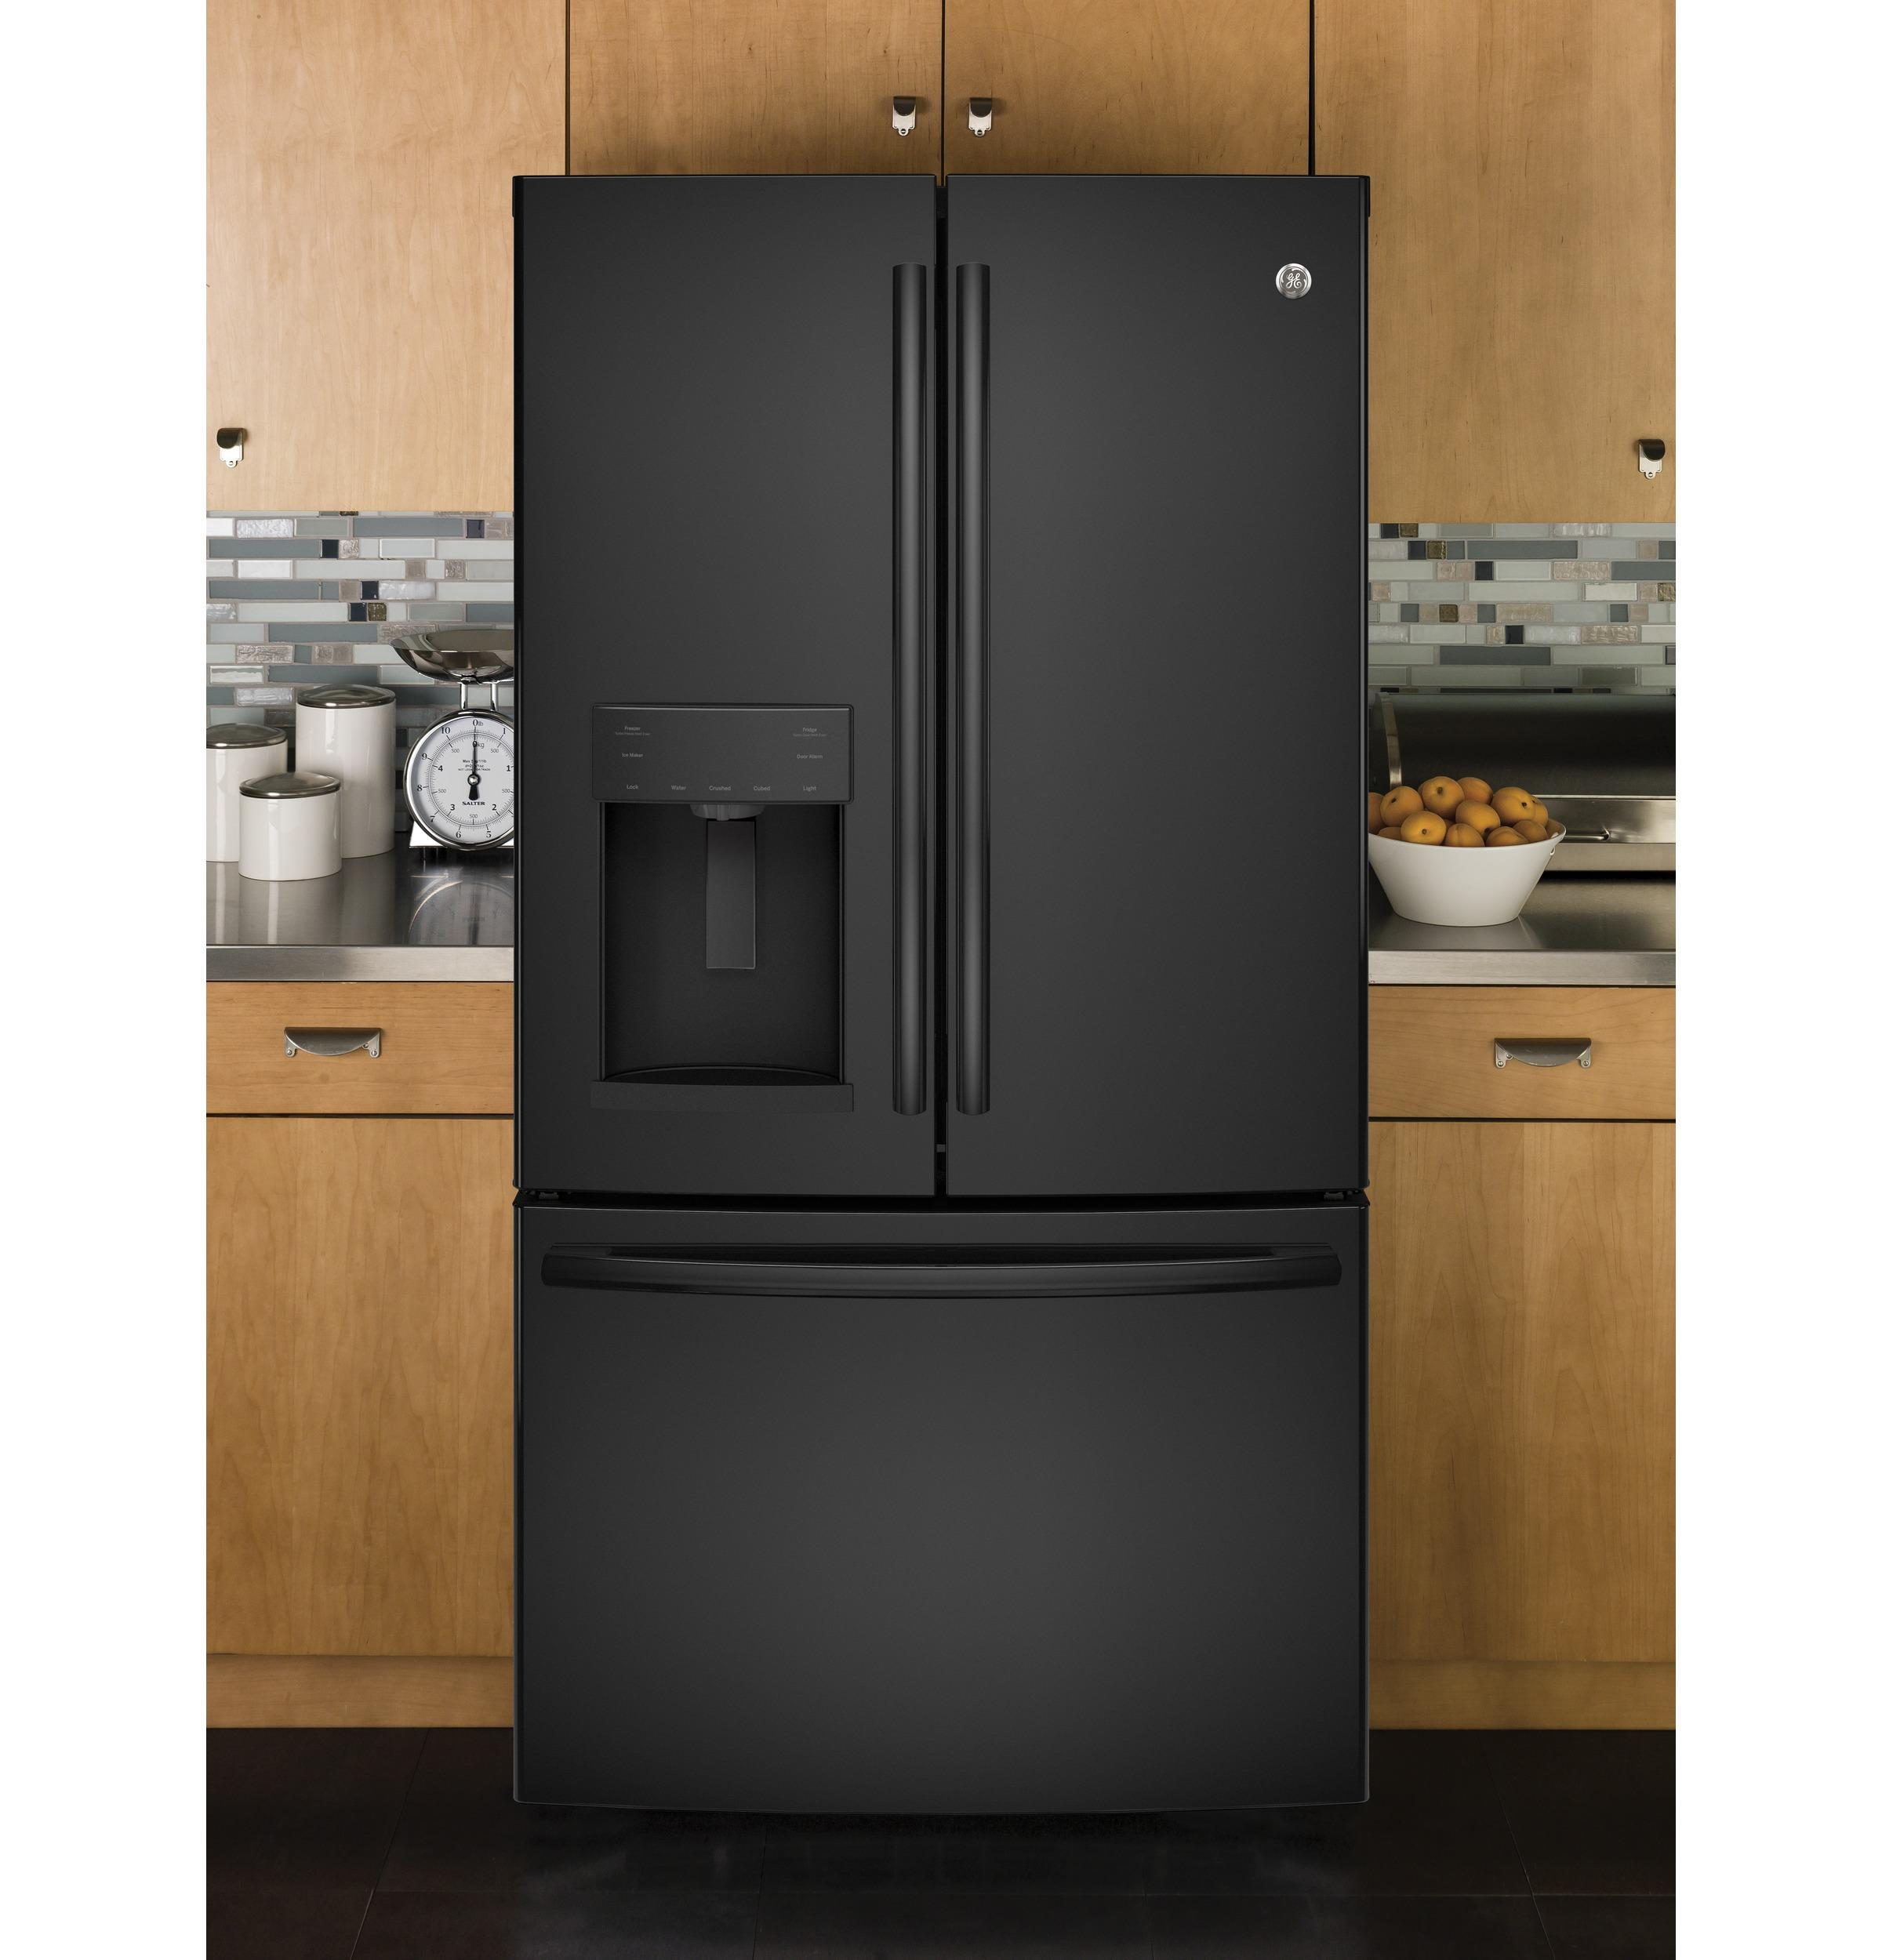 GE(R) ENERGY STAR(R) 27.8 Cu. Ft. French-Door Refrigerator